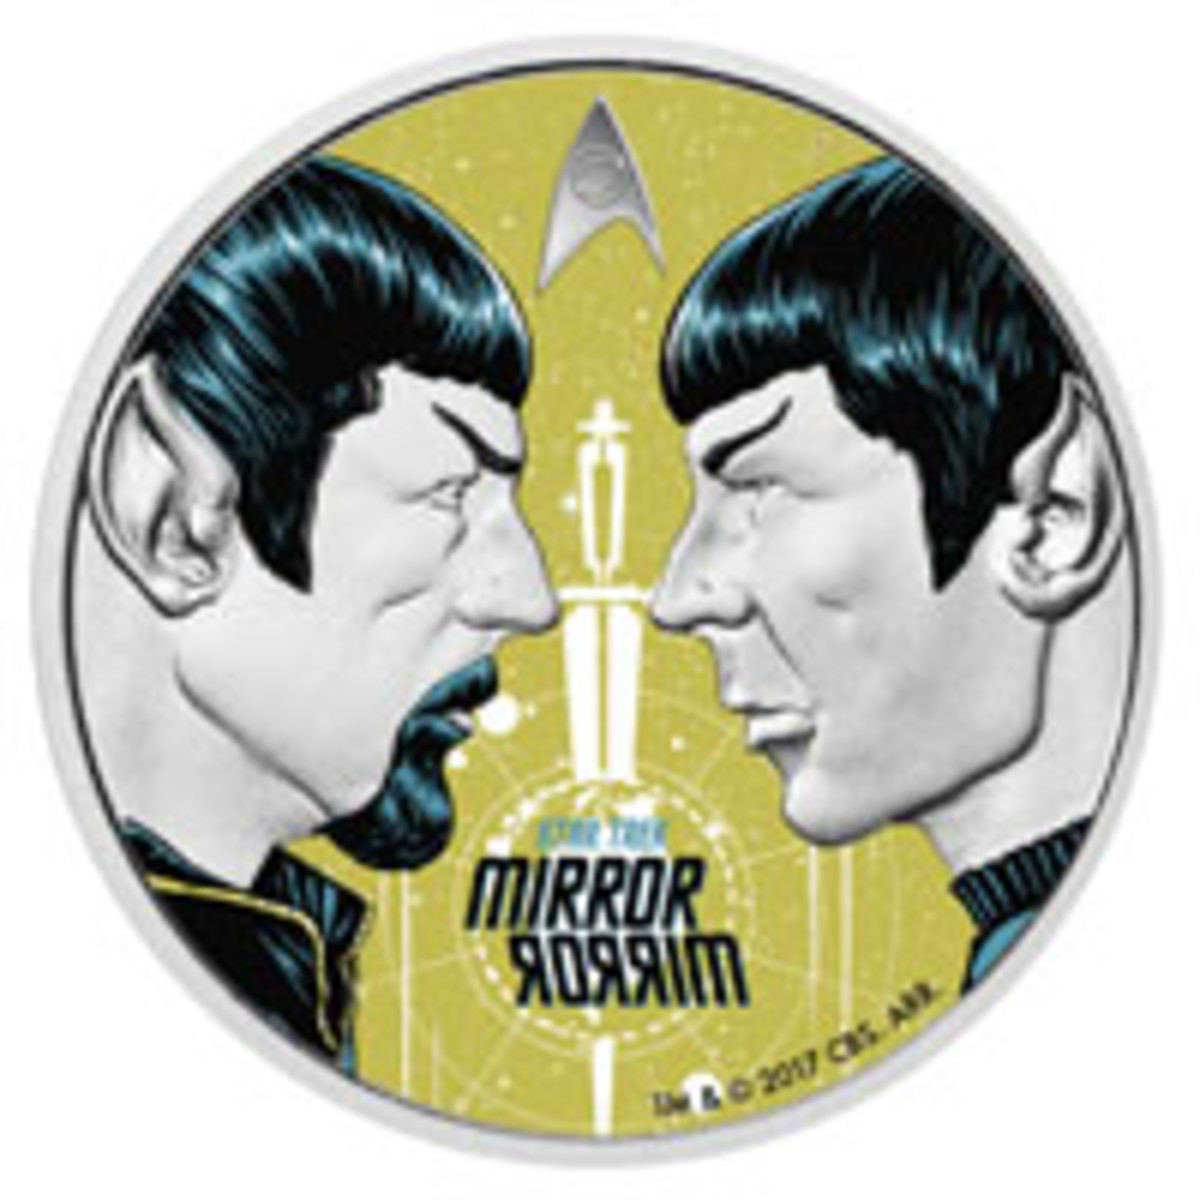 Spock meets his evil counterpart on the reverse of The Perth Mint's silver dollar struck for Tuvalu. (Image courtesy and © The Perth Mint. TM & © 2017 CBS Studios Inc. STAR TREK and related marks and logos are trademarks of CBS Studios Inc. All Rights Reserved.)